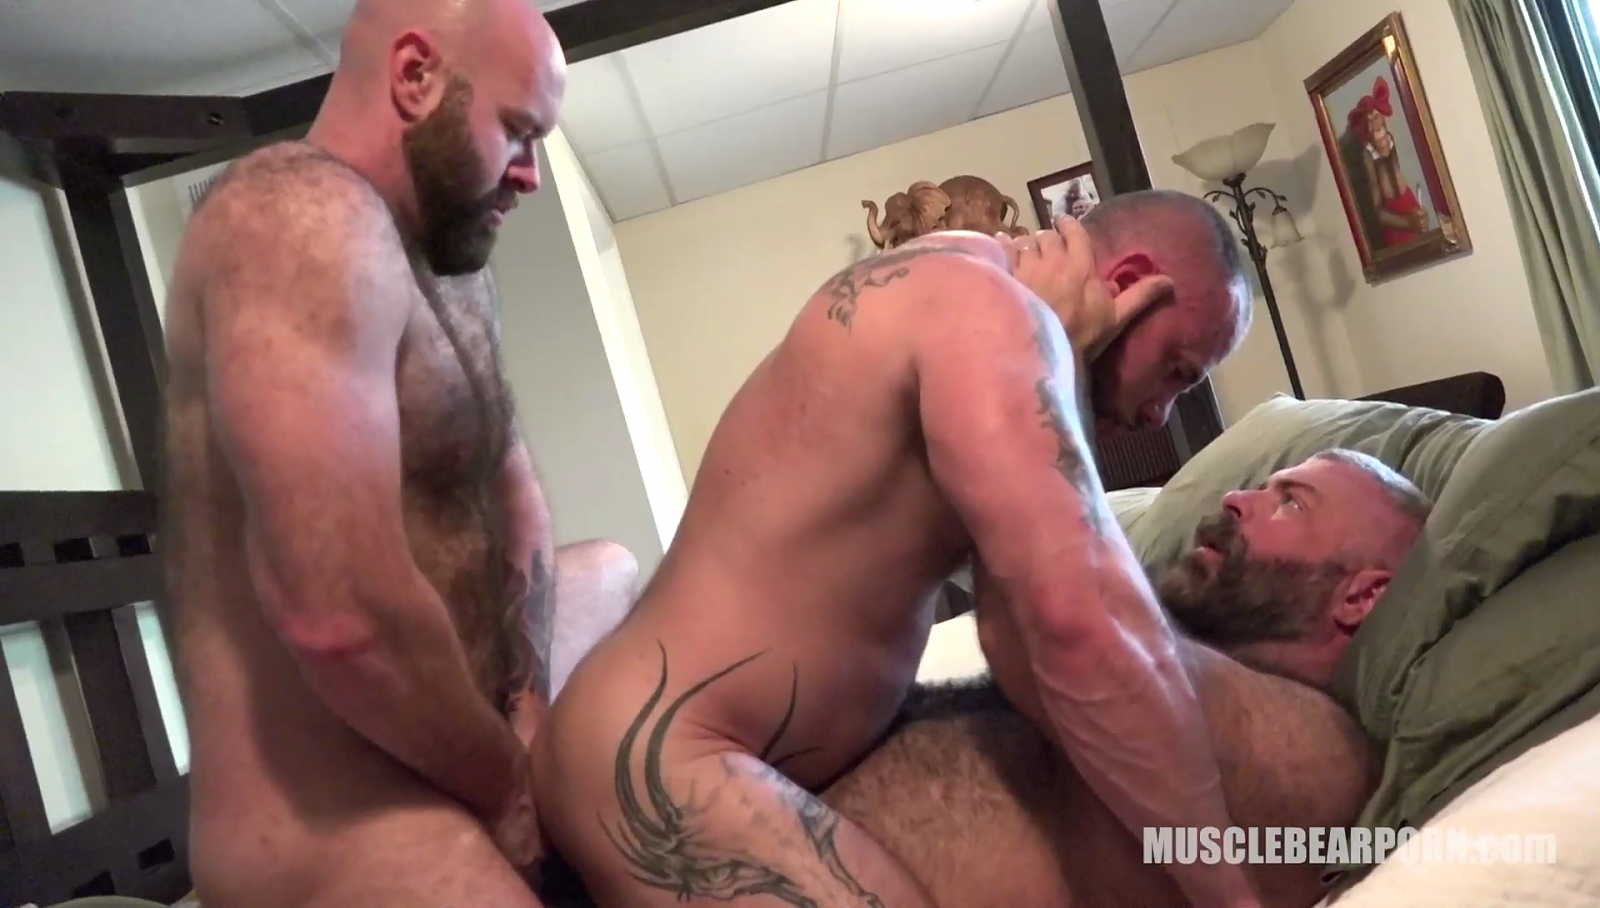 gay twink gets fucked raw andhis ass filled and balls covered by multiple loads of cum analcaptions